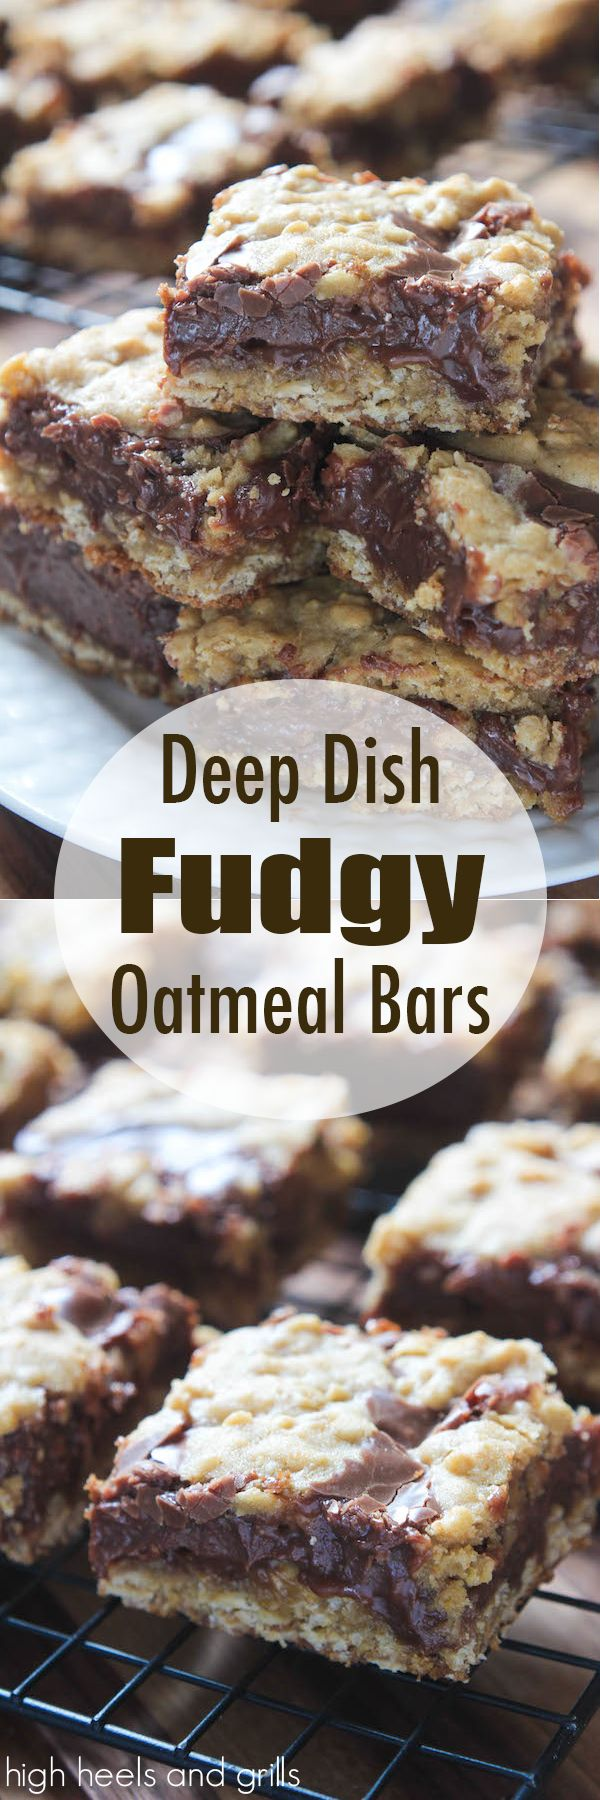 Deep Dish Fudgy Oatmeal Bars. Delicious and easy dessert recipe. http://www.highheelsandgrills.com/2015/01/deep-dish-fudgy-oatmeal-bars.html